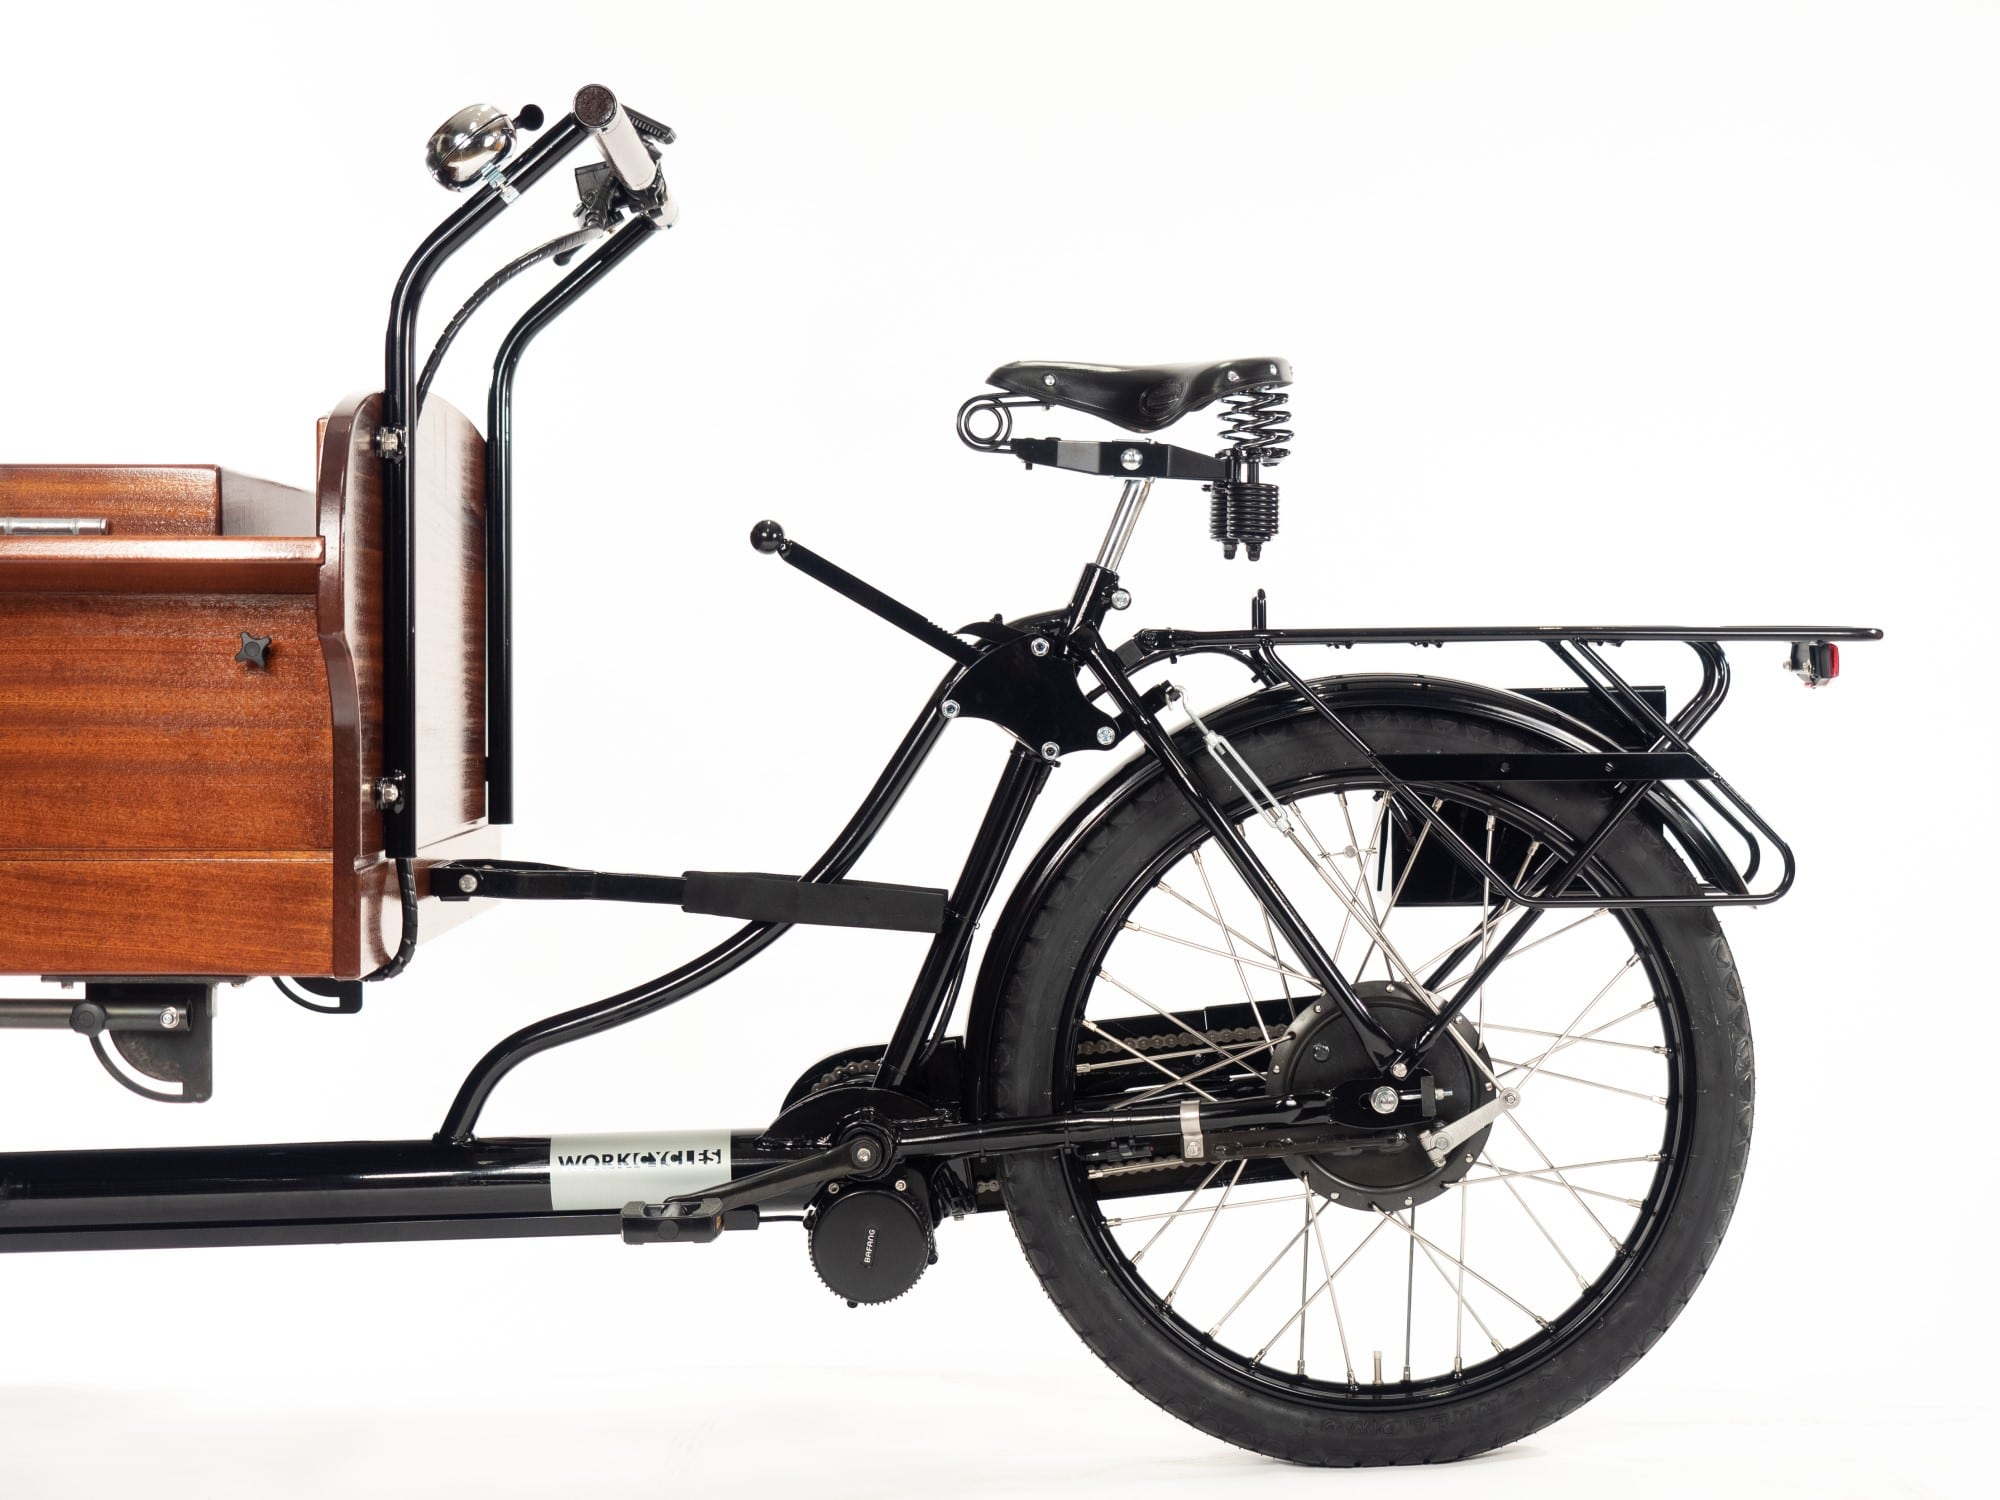 Practical maximum cargo weight for cycling is around 250kg